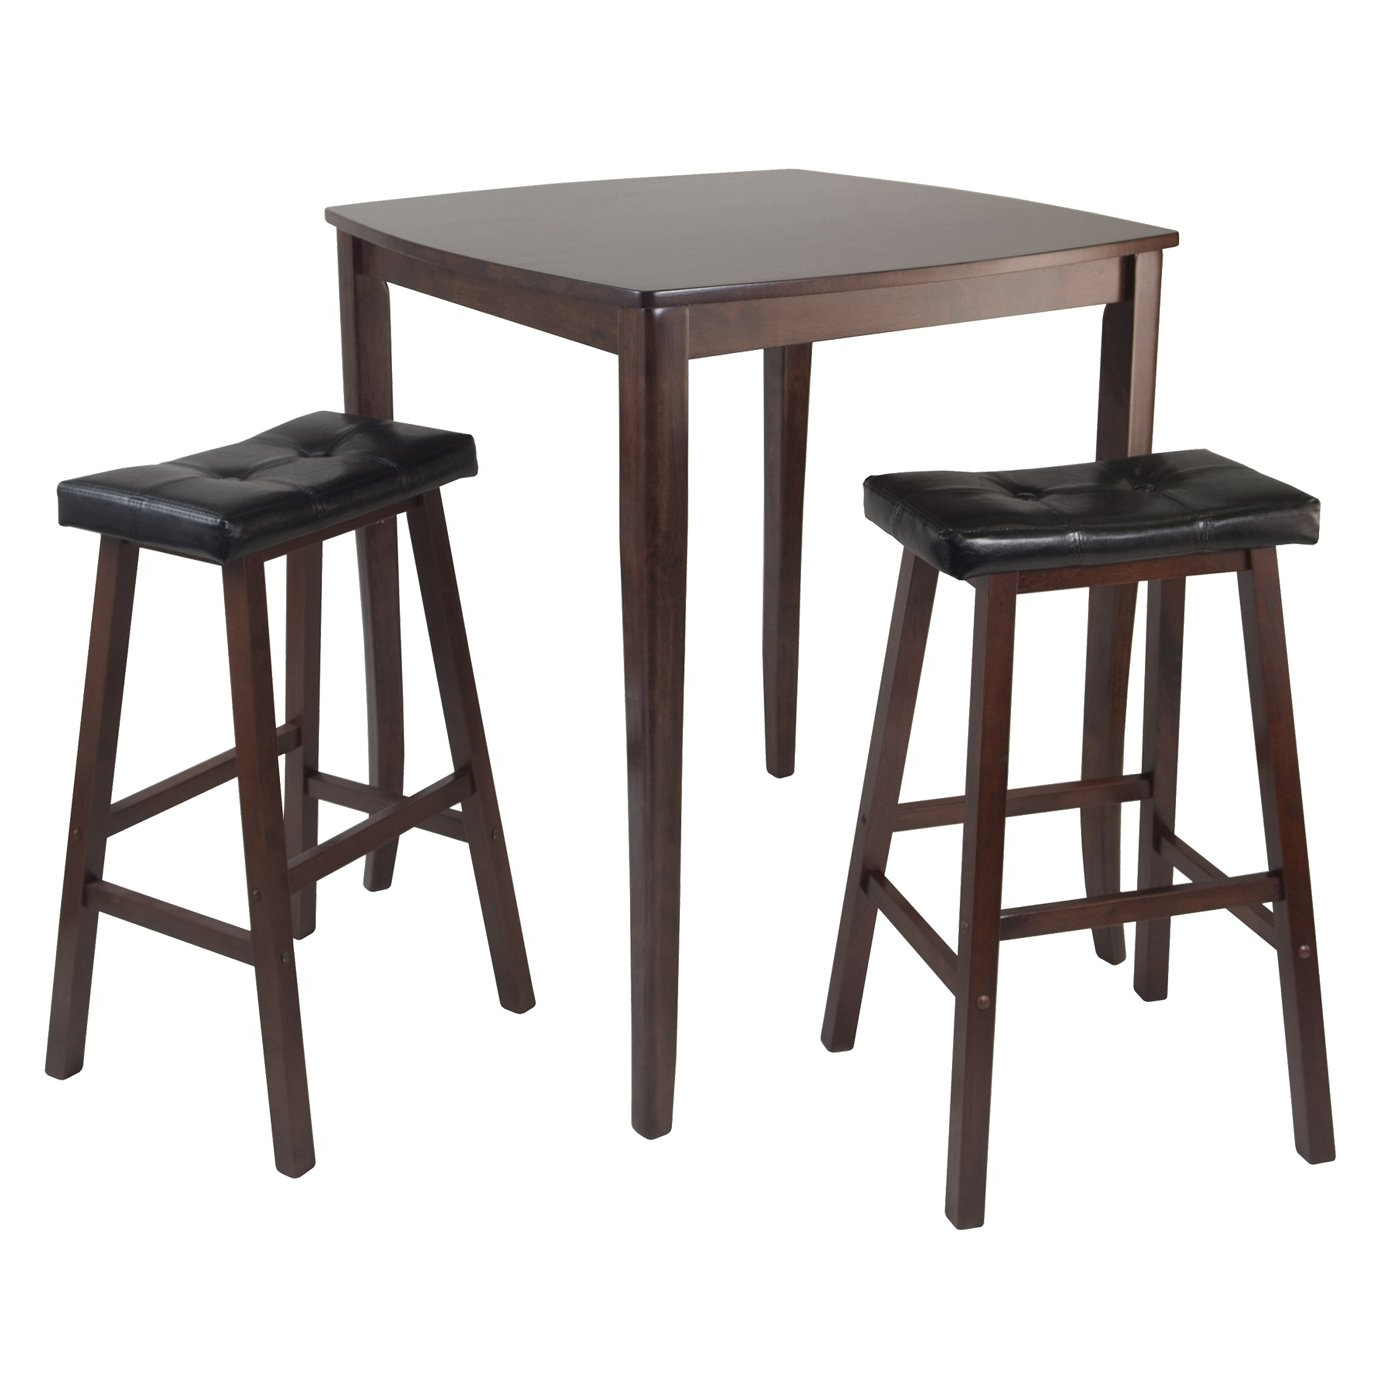 Fashionable Winsome Wood 94360 Inglewood 3 Piece High Pub Table Dining Set With Regard To Winsome 3 Piece Counter Height Dining Sets (View 5 of 20)